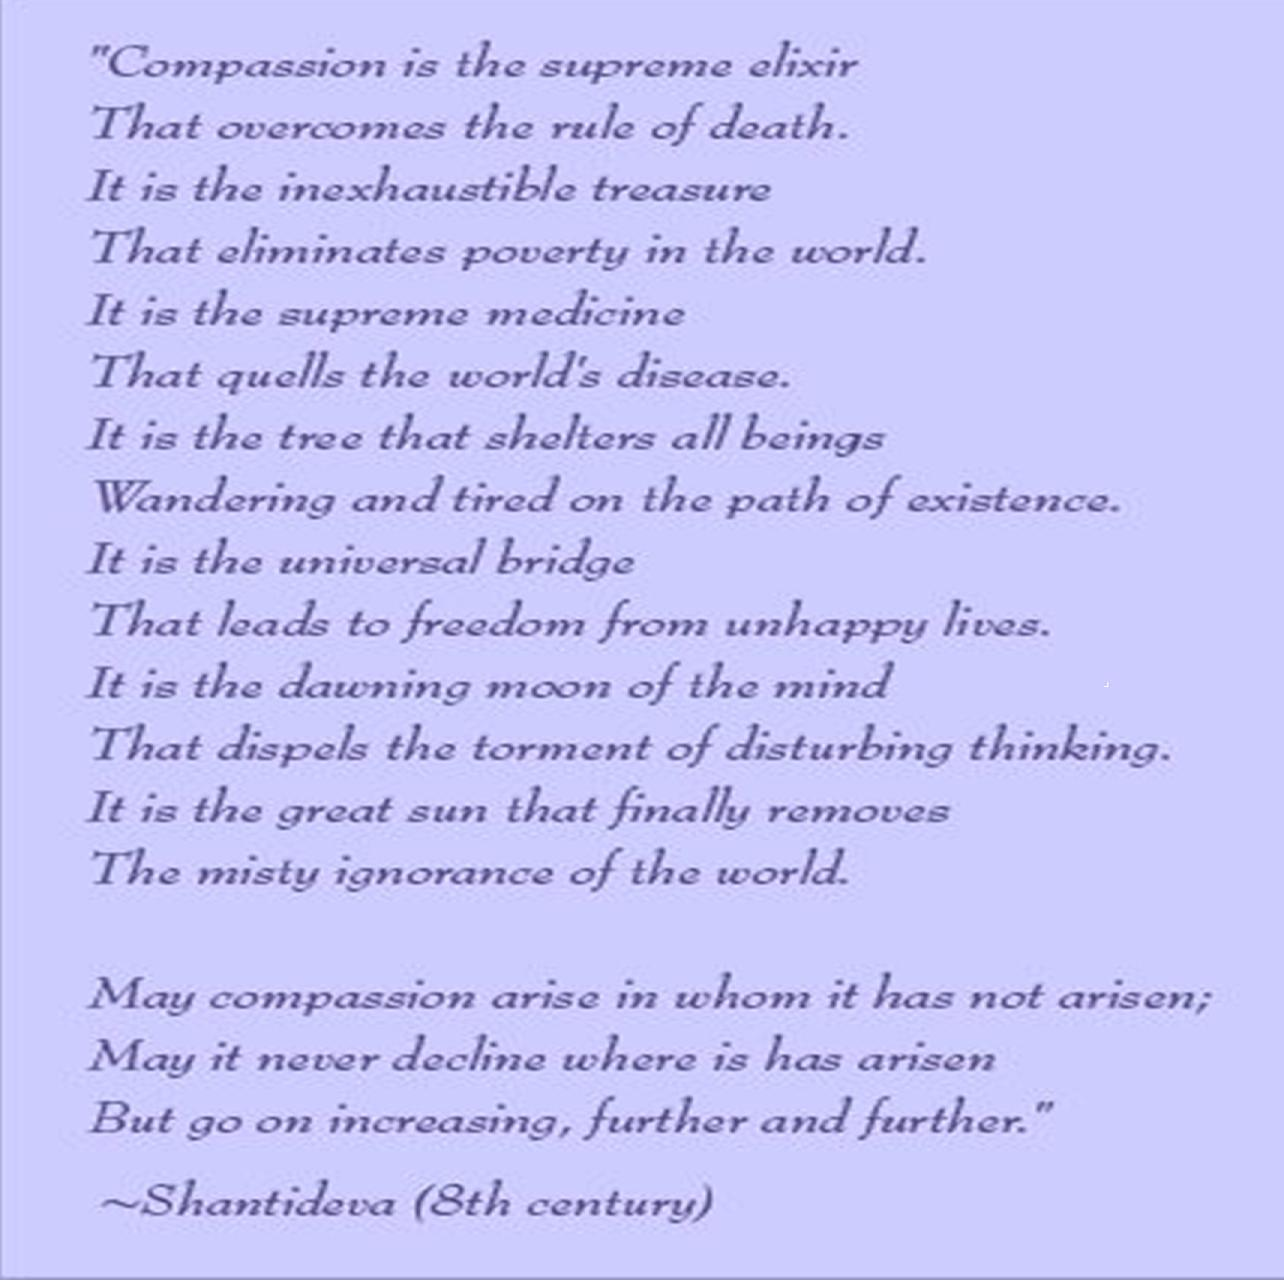 2013 Relational Buddhism Shantideva Compassion text